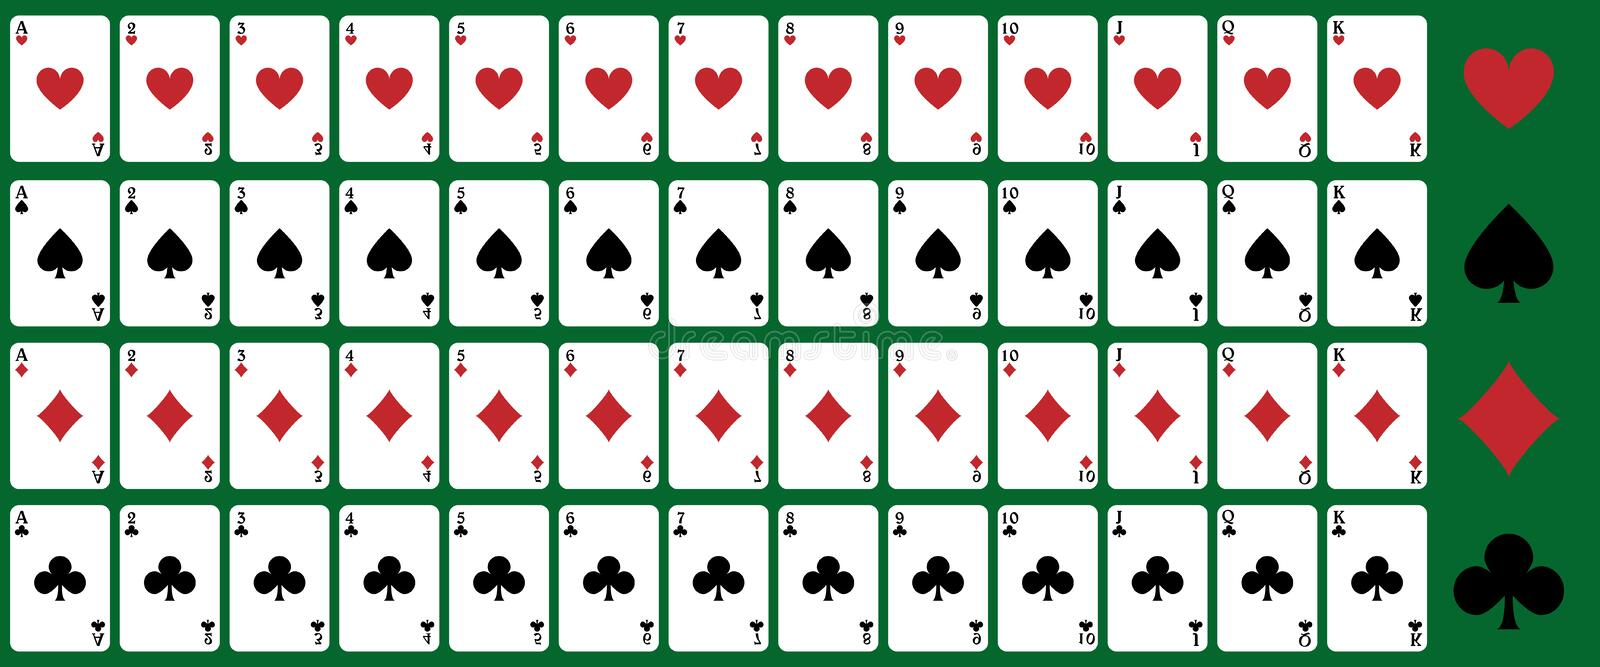 Poker playing cards. Set of playing cards for poker or blackjack,isolated on green background.EPS file available royalty free illustration